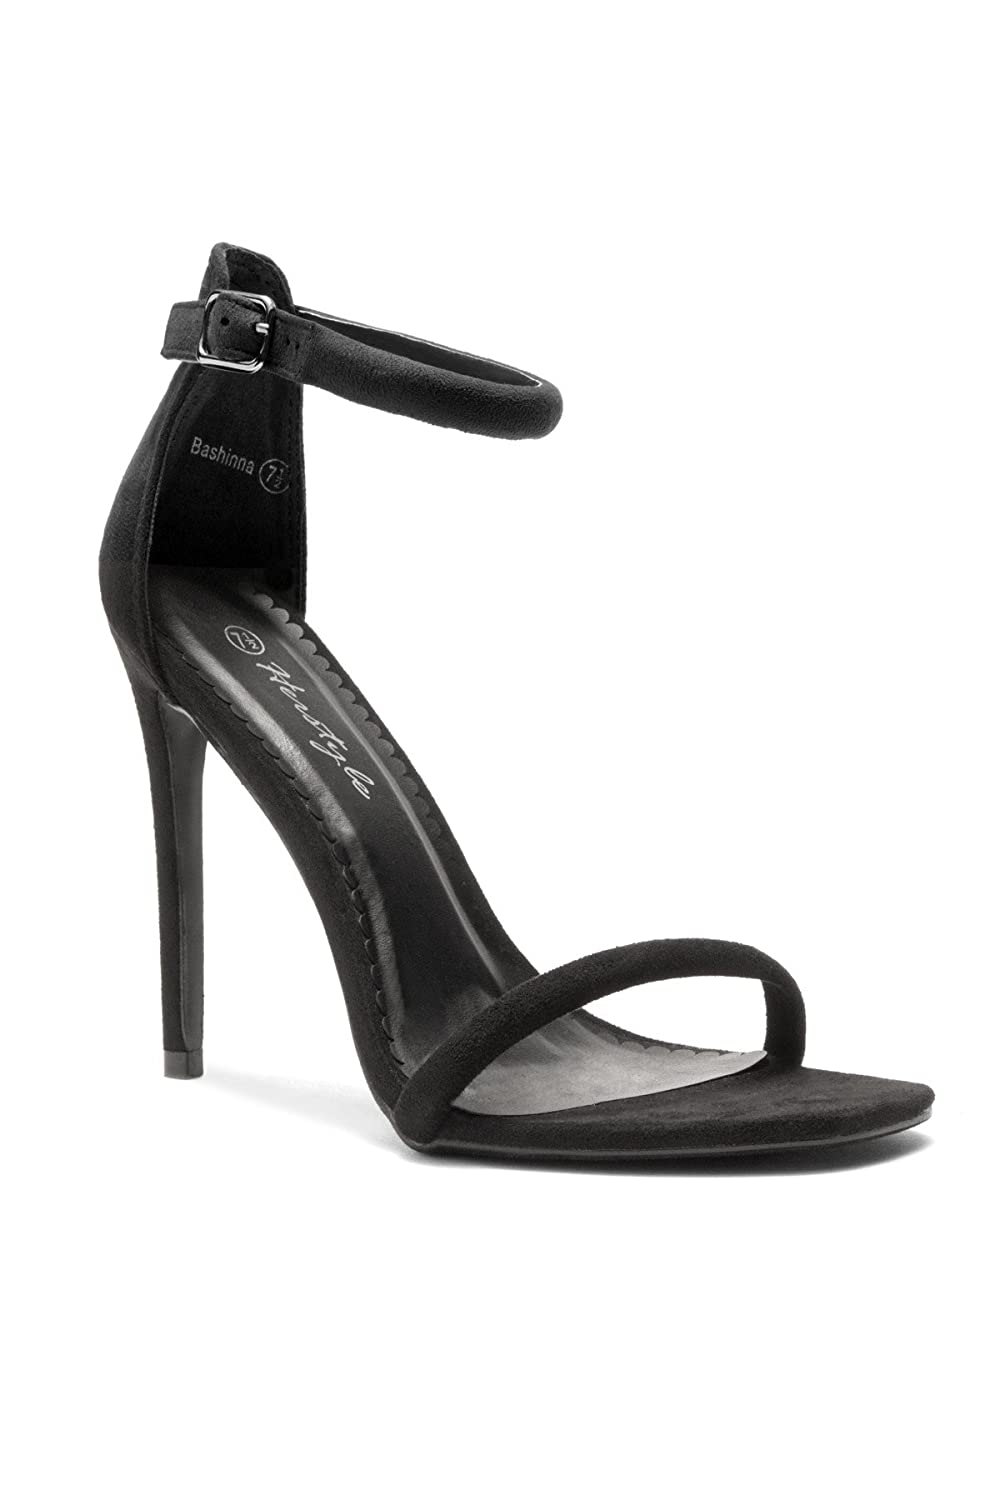 HerStyle Bashinna Ankle Rounded Strap, Open Toe, Stiletto Heel Black